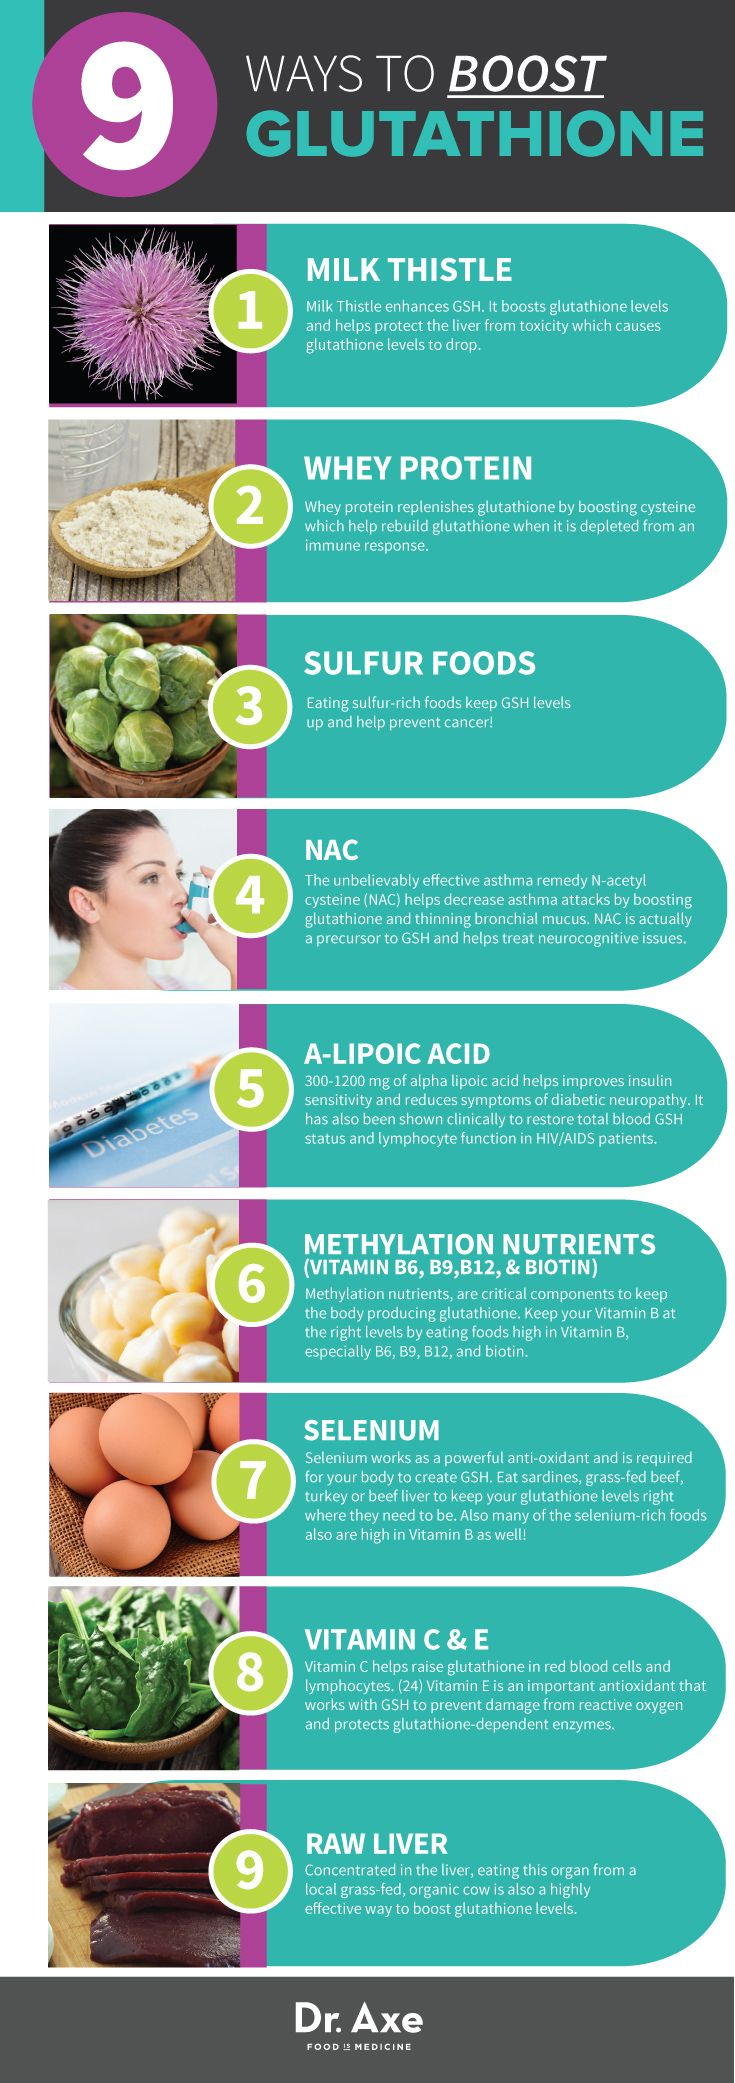 9 ways to boost glutathione  http://www.draxe.com #health #holistic #natural